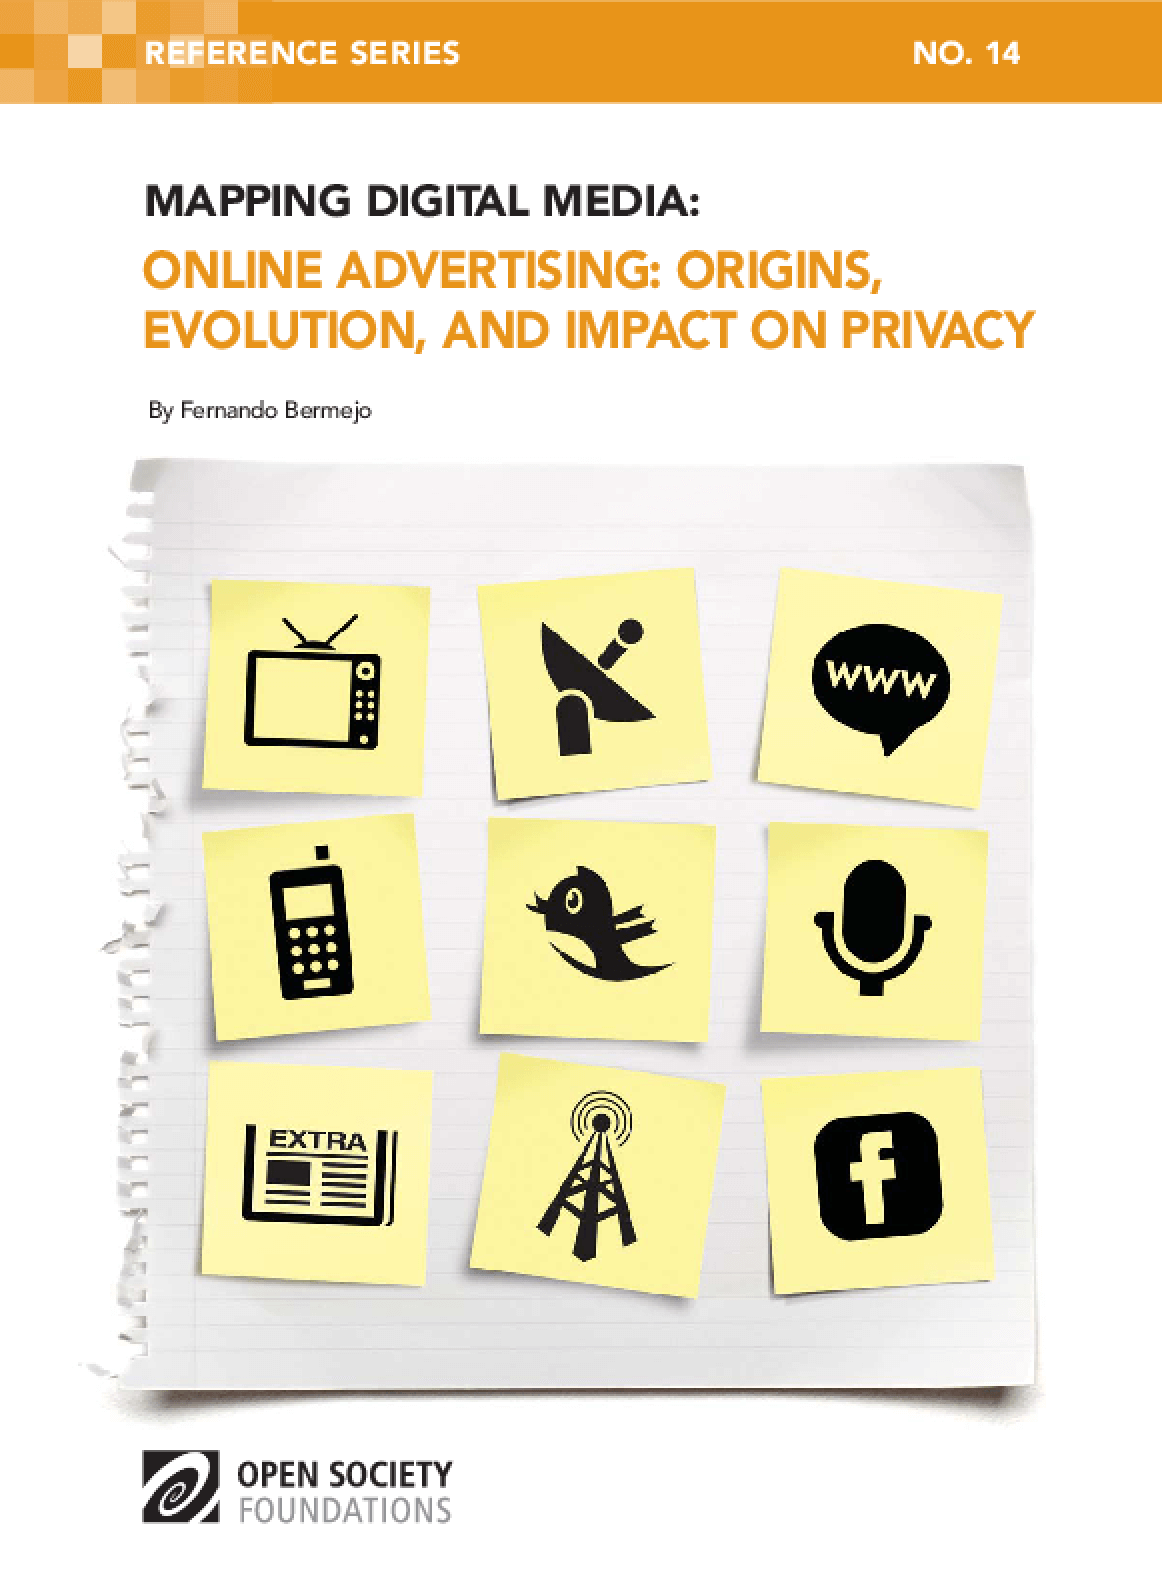 Mapping Digital Media: Online Advertising - Origins, Evolution, and Impact on Privacy